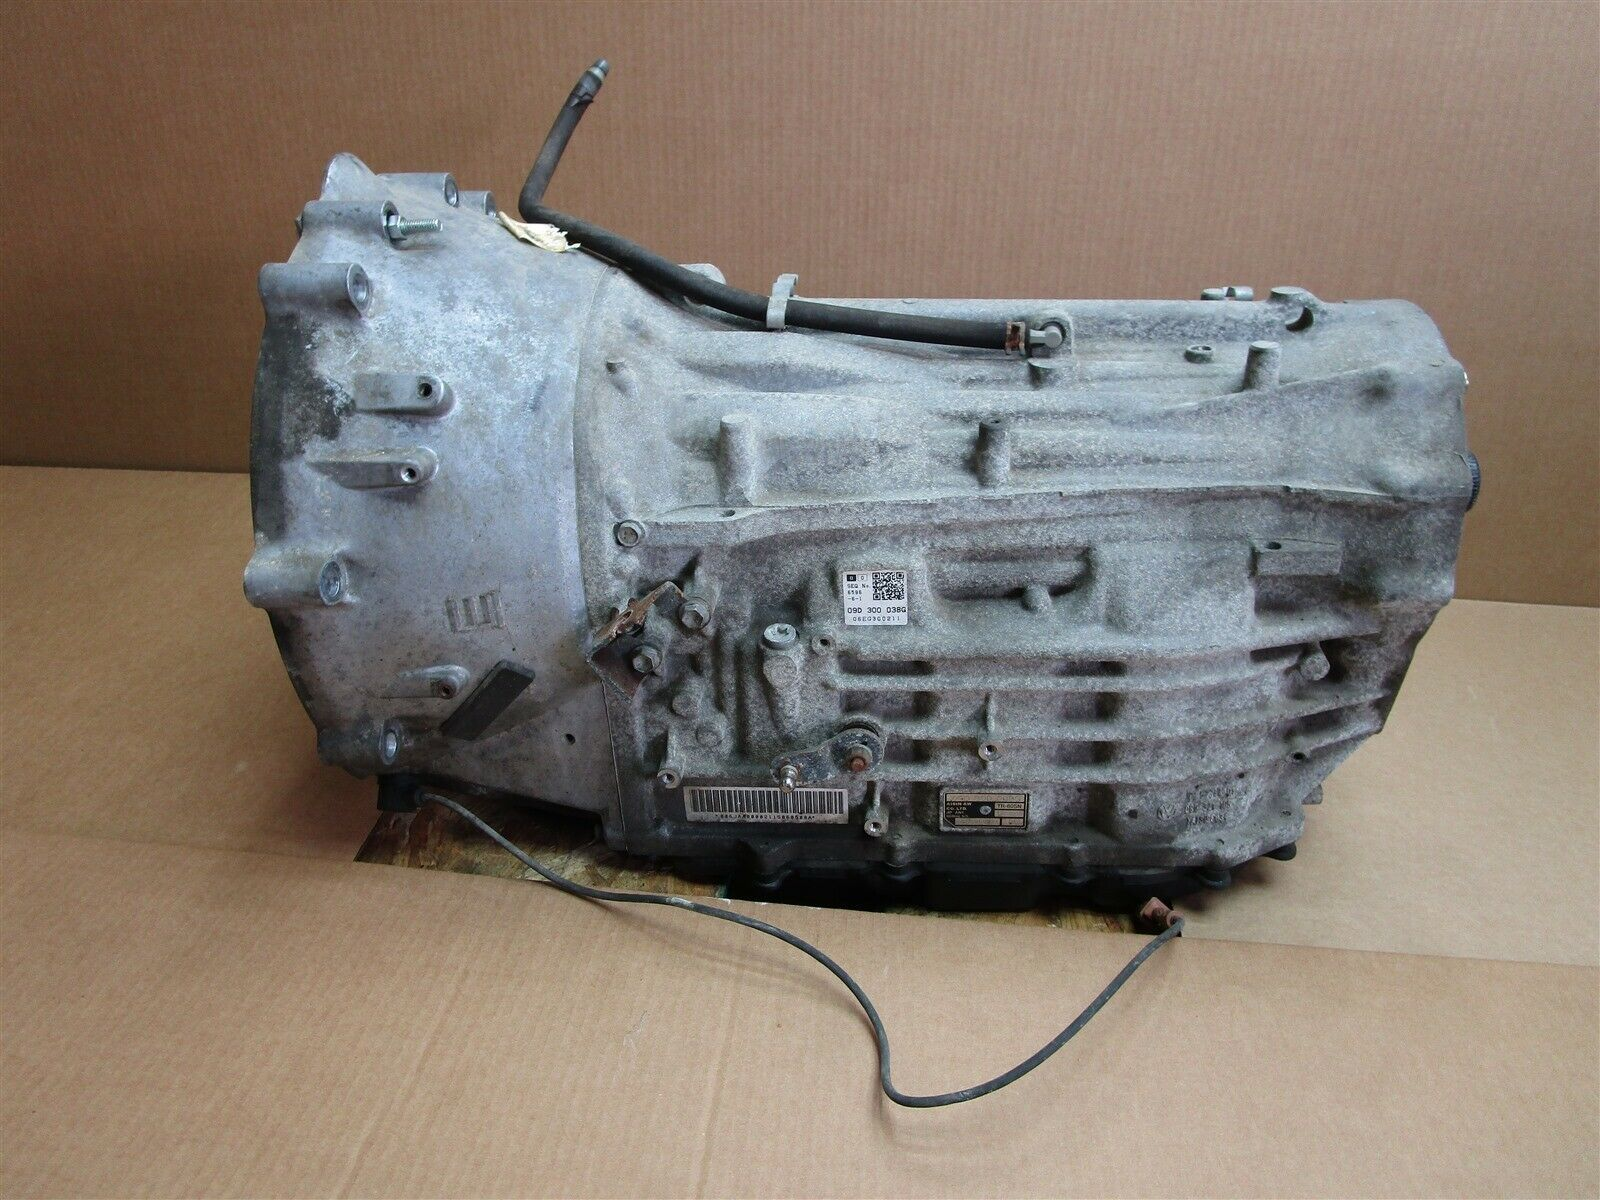 06 Cayenne S AWD Porsche 955 AUTOMATIC TRANSMISSION JAA 09D300038G 66,370